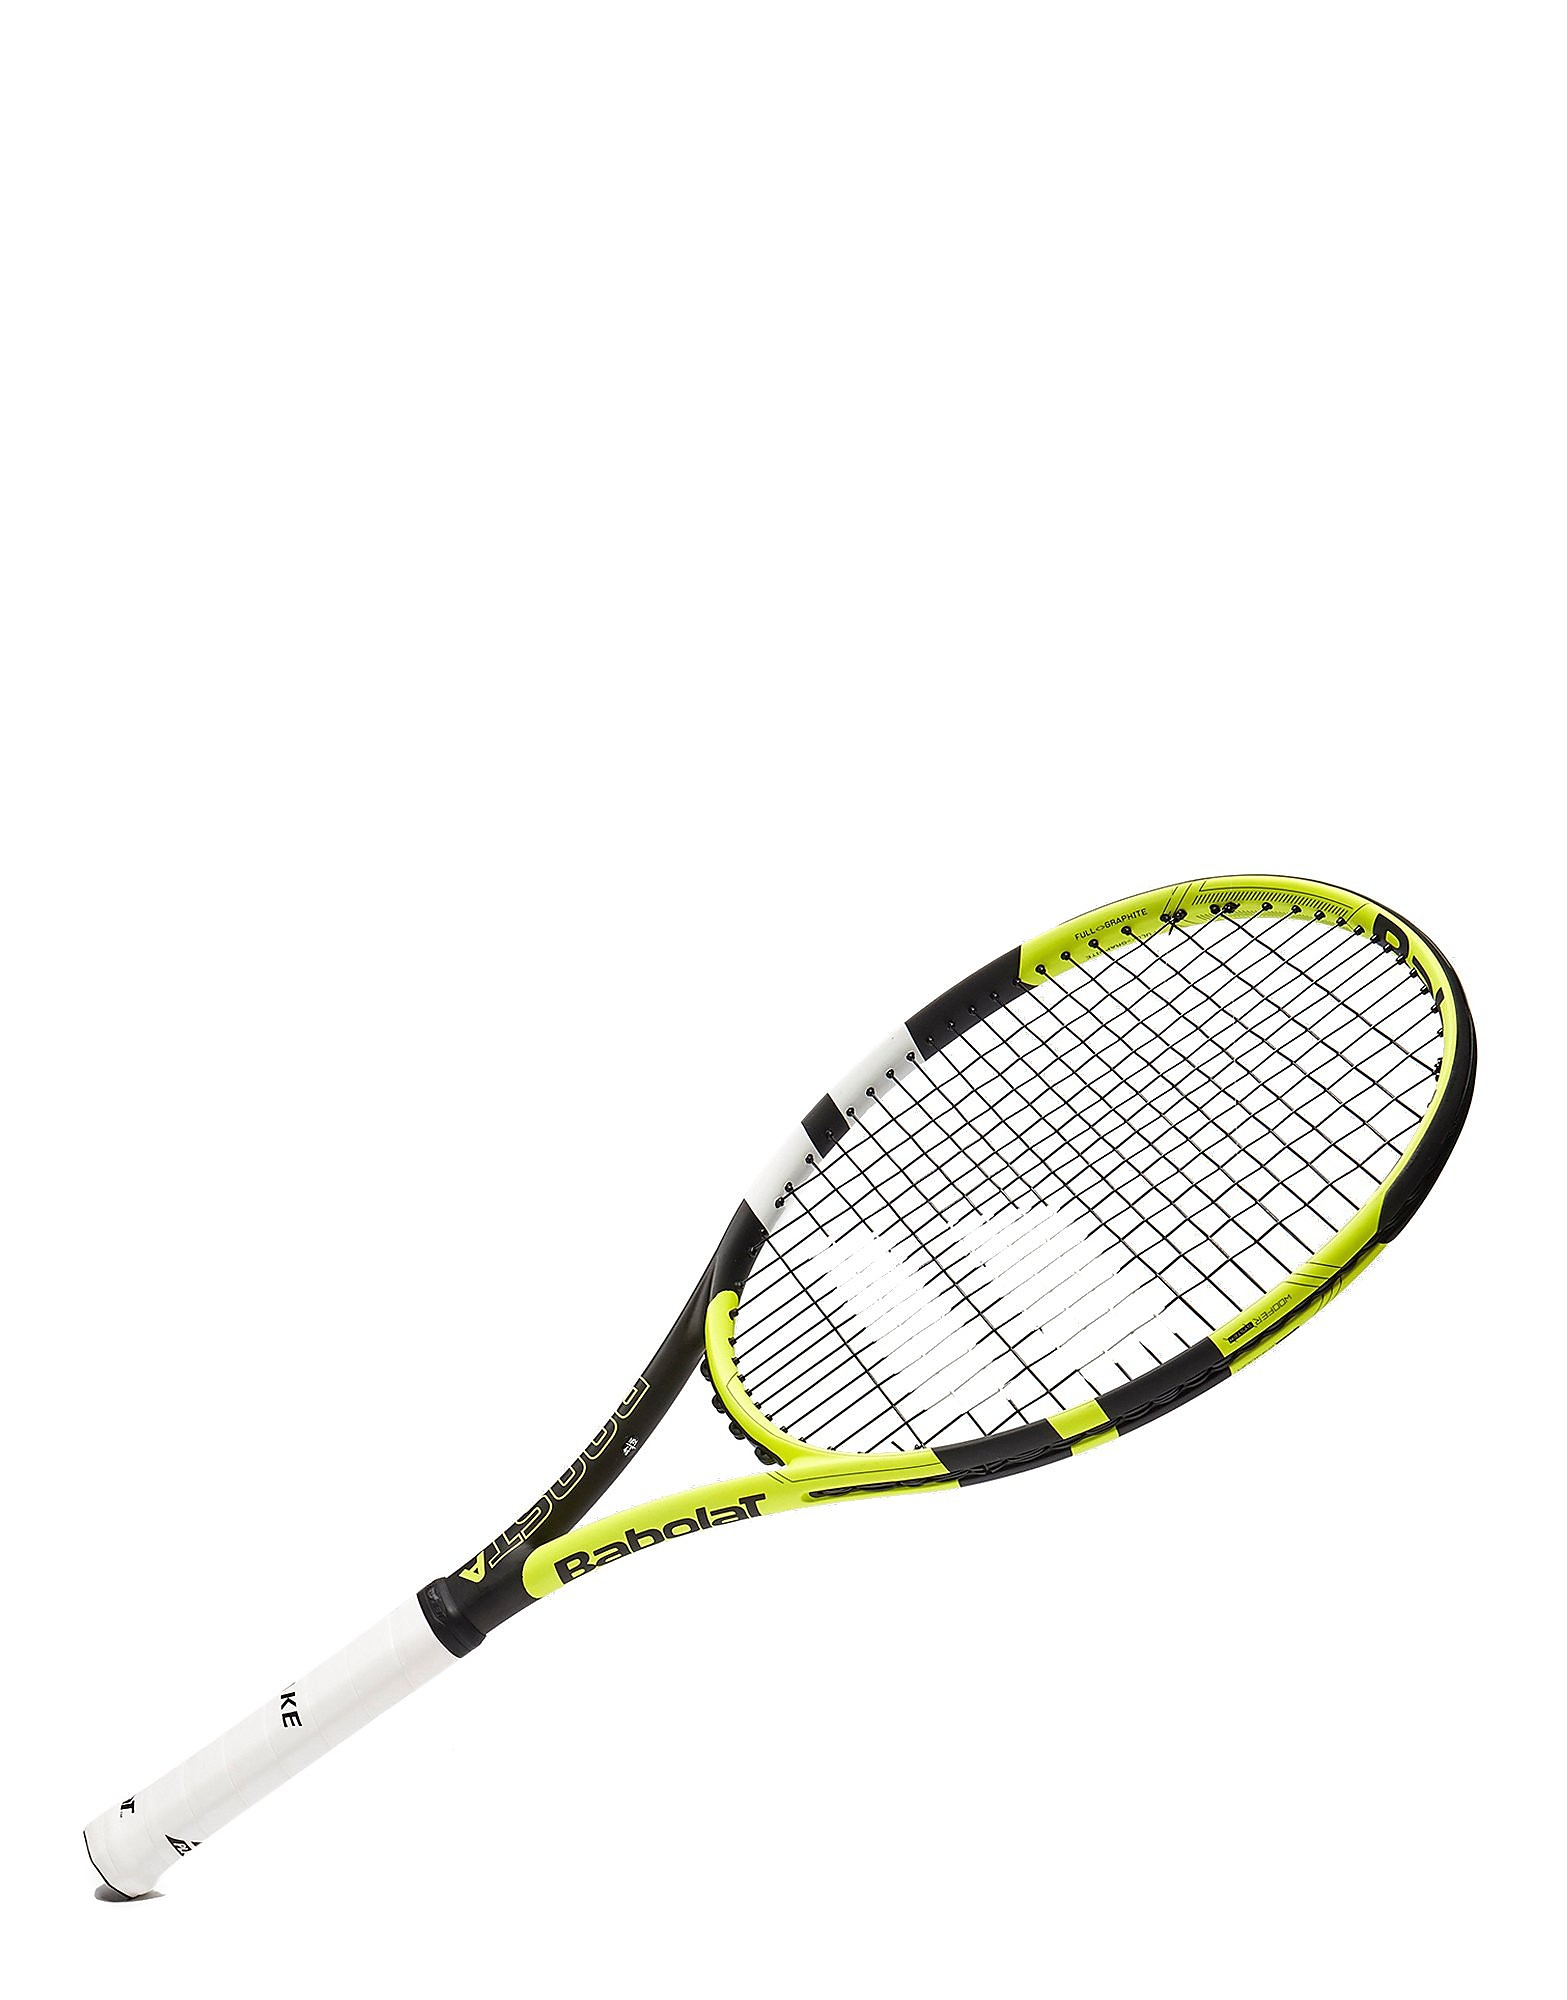 Babolat Boost Aero Tennis Racket Junior